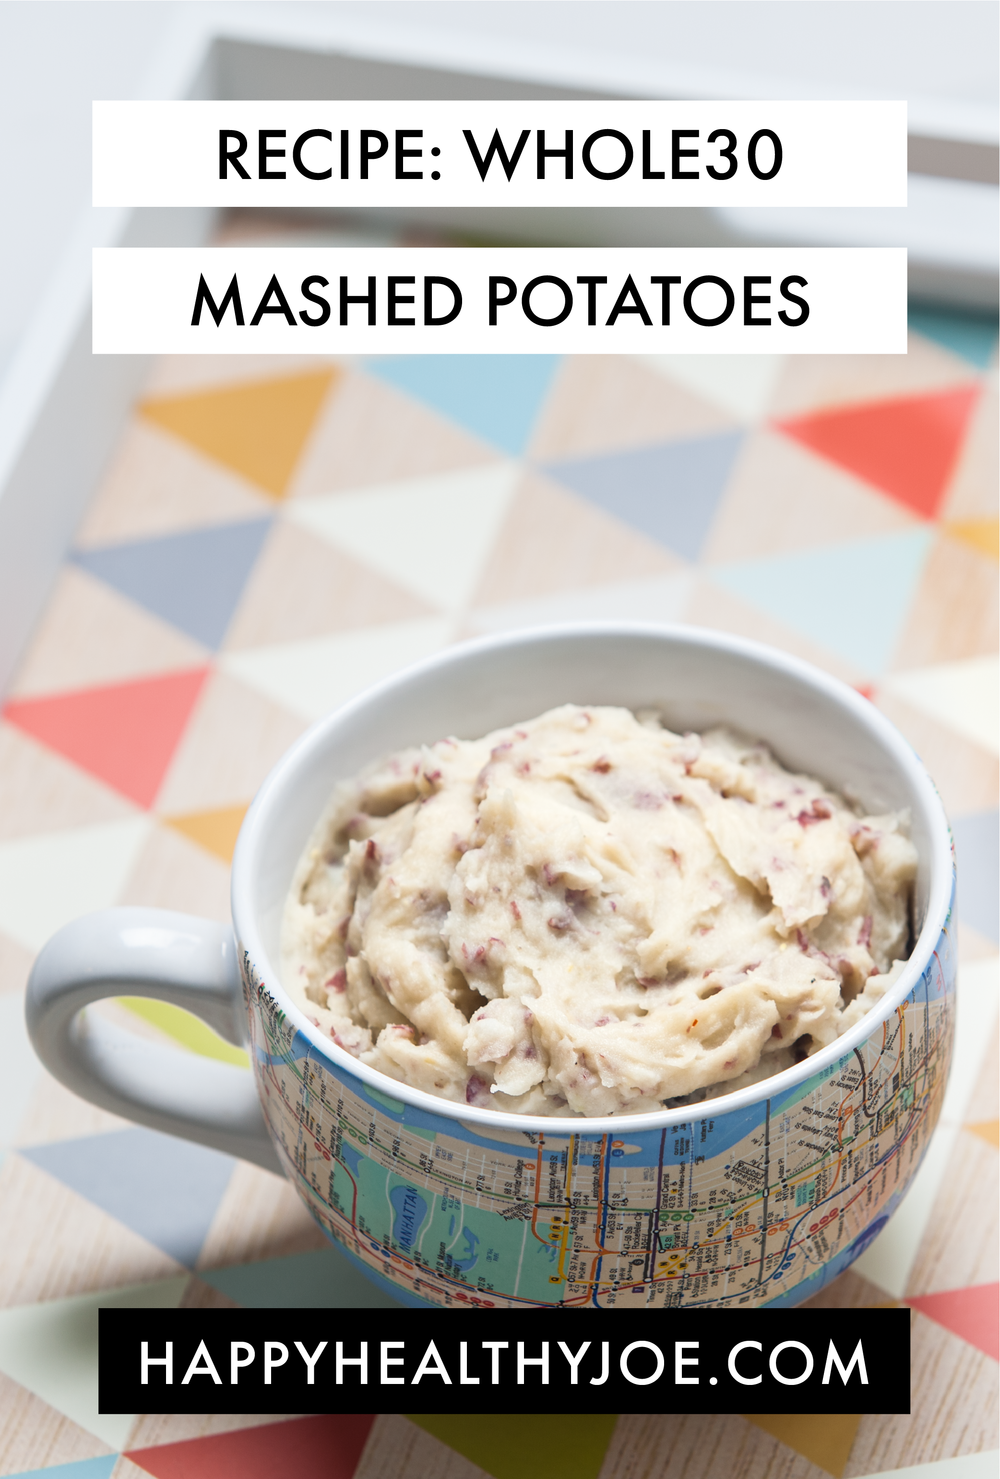 Recipe: Paleo Whole30 Mashed Potatoes - Happy Healthy Joe - Integrative Nutrition Coach